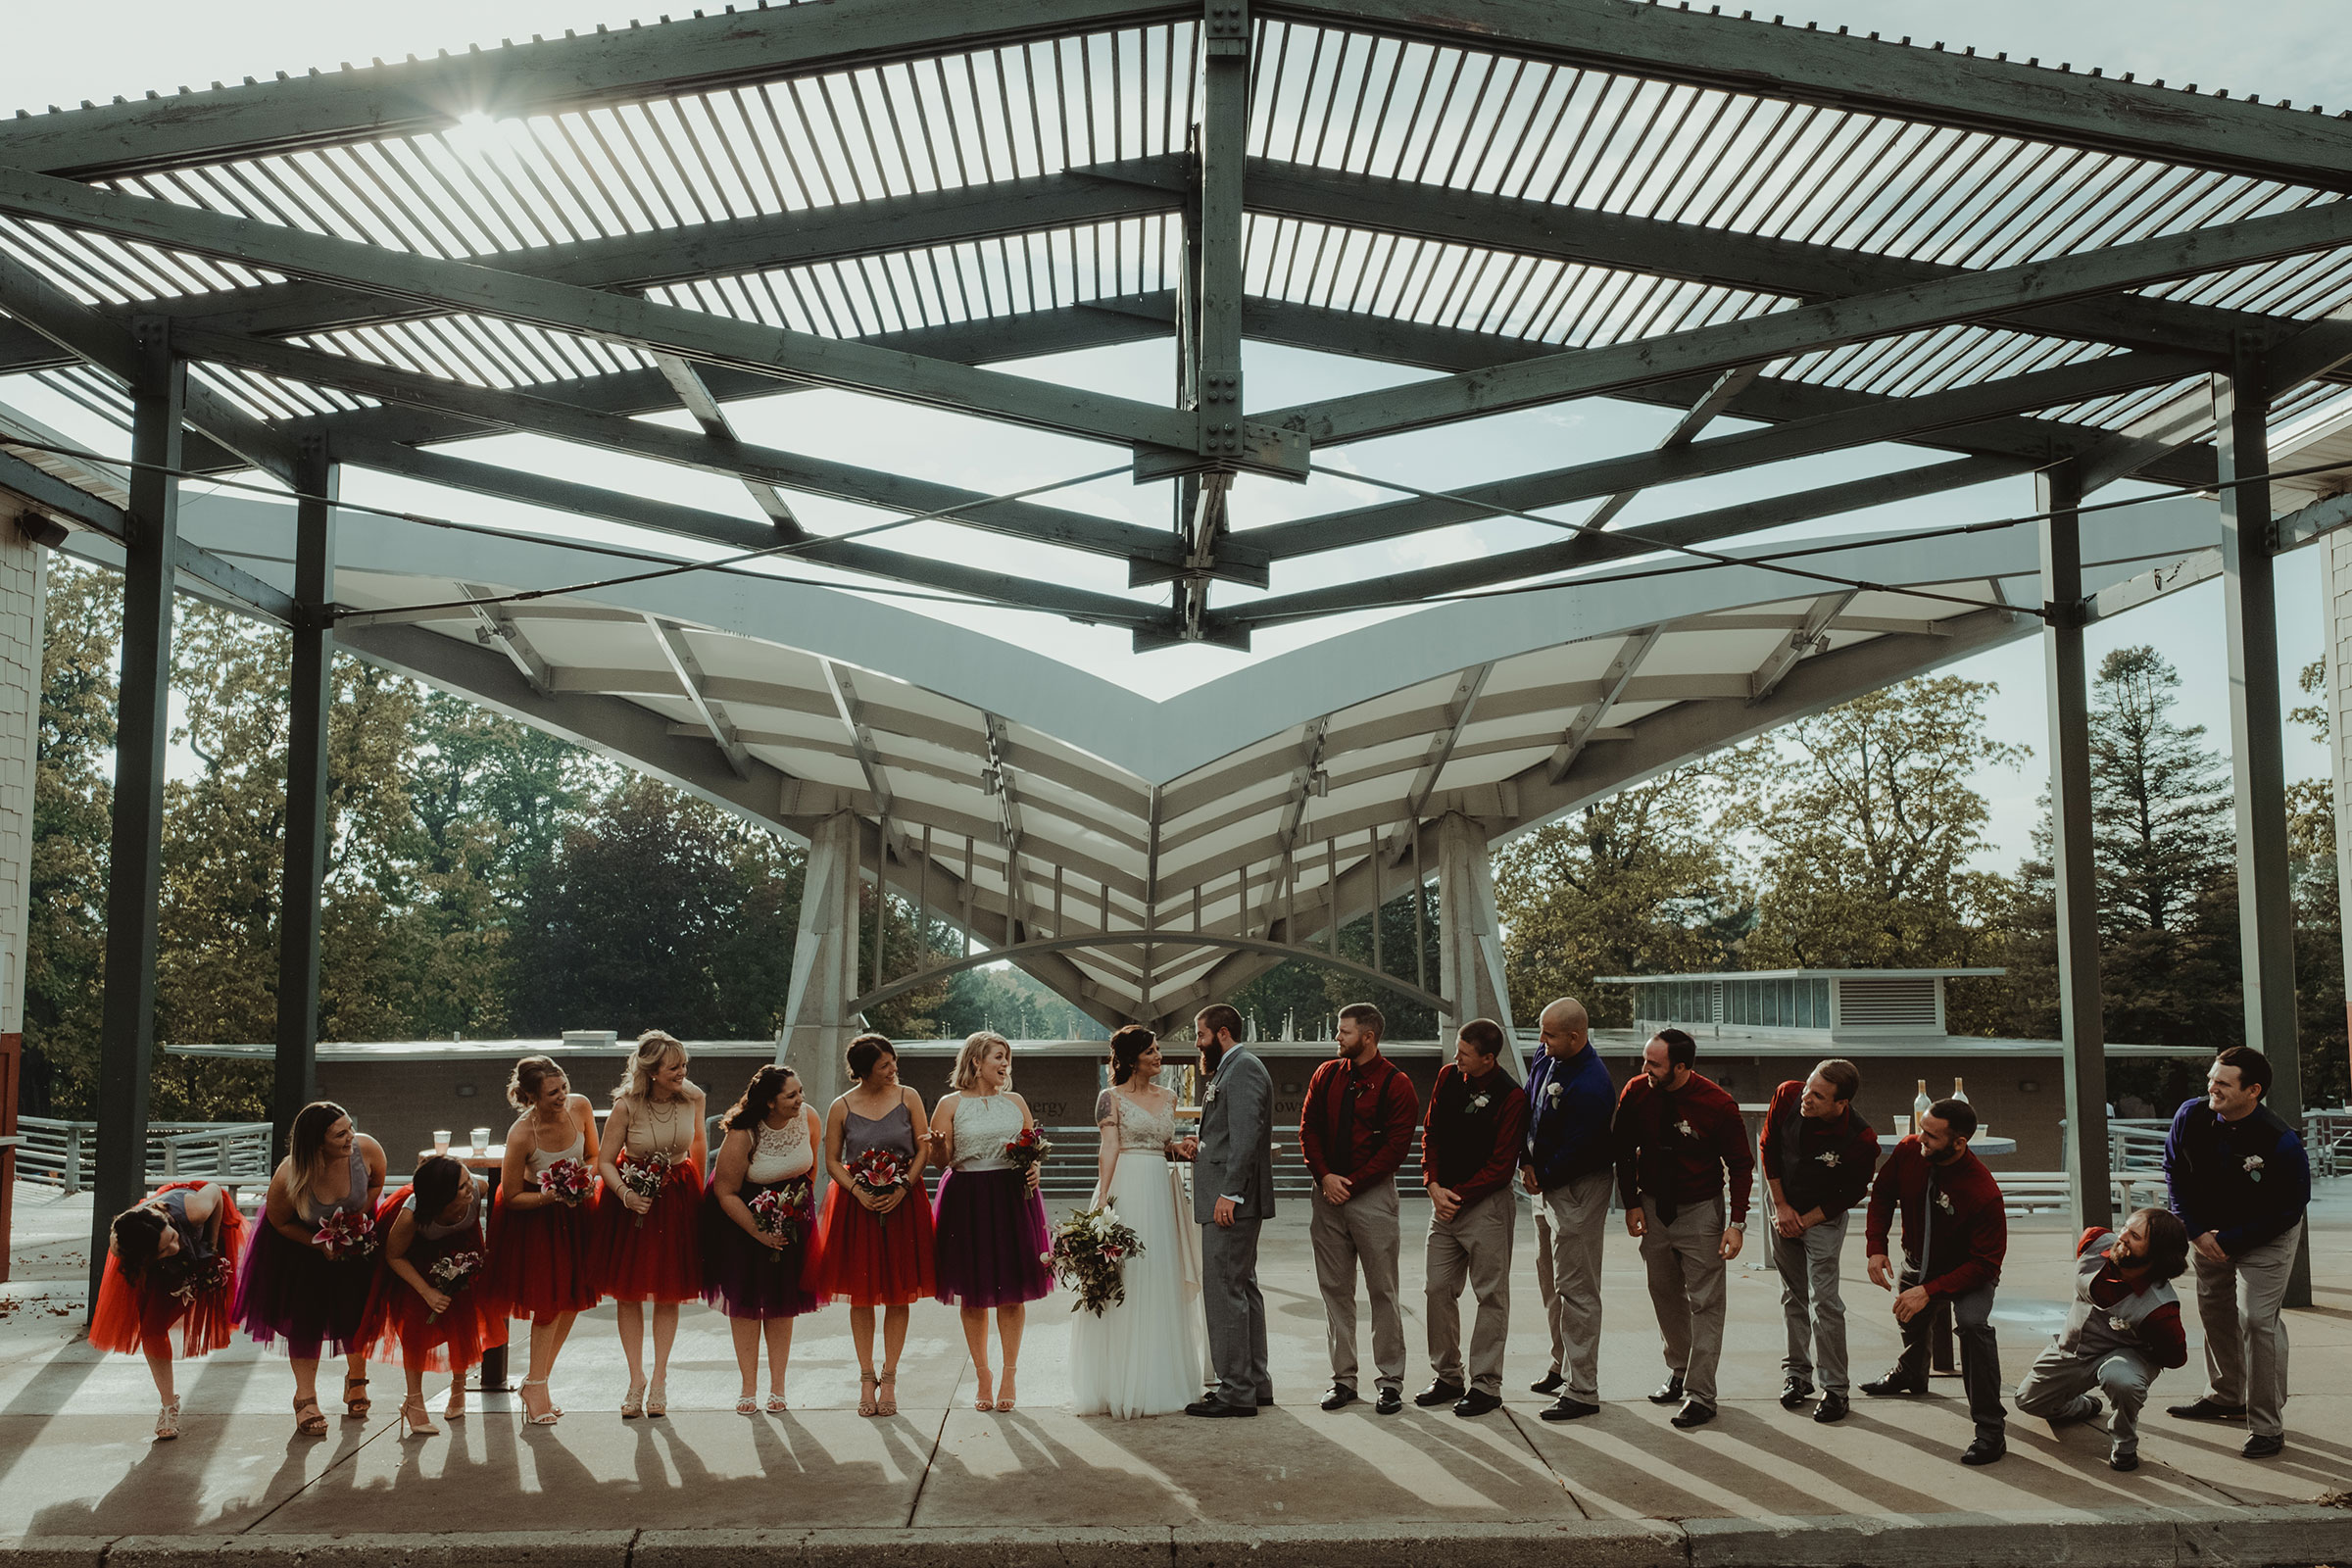 wedding-party-lined-up-under-band-shell-iowa-state-fairgrounds-desmoines-iowa-raelyn-ramey-photography.jpg